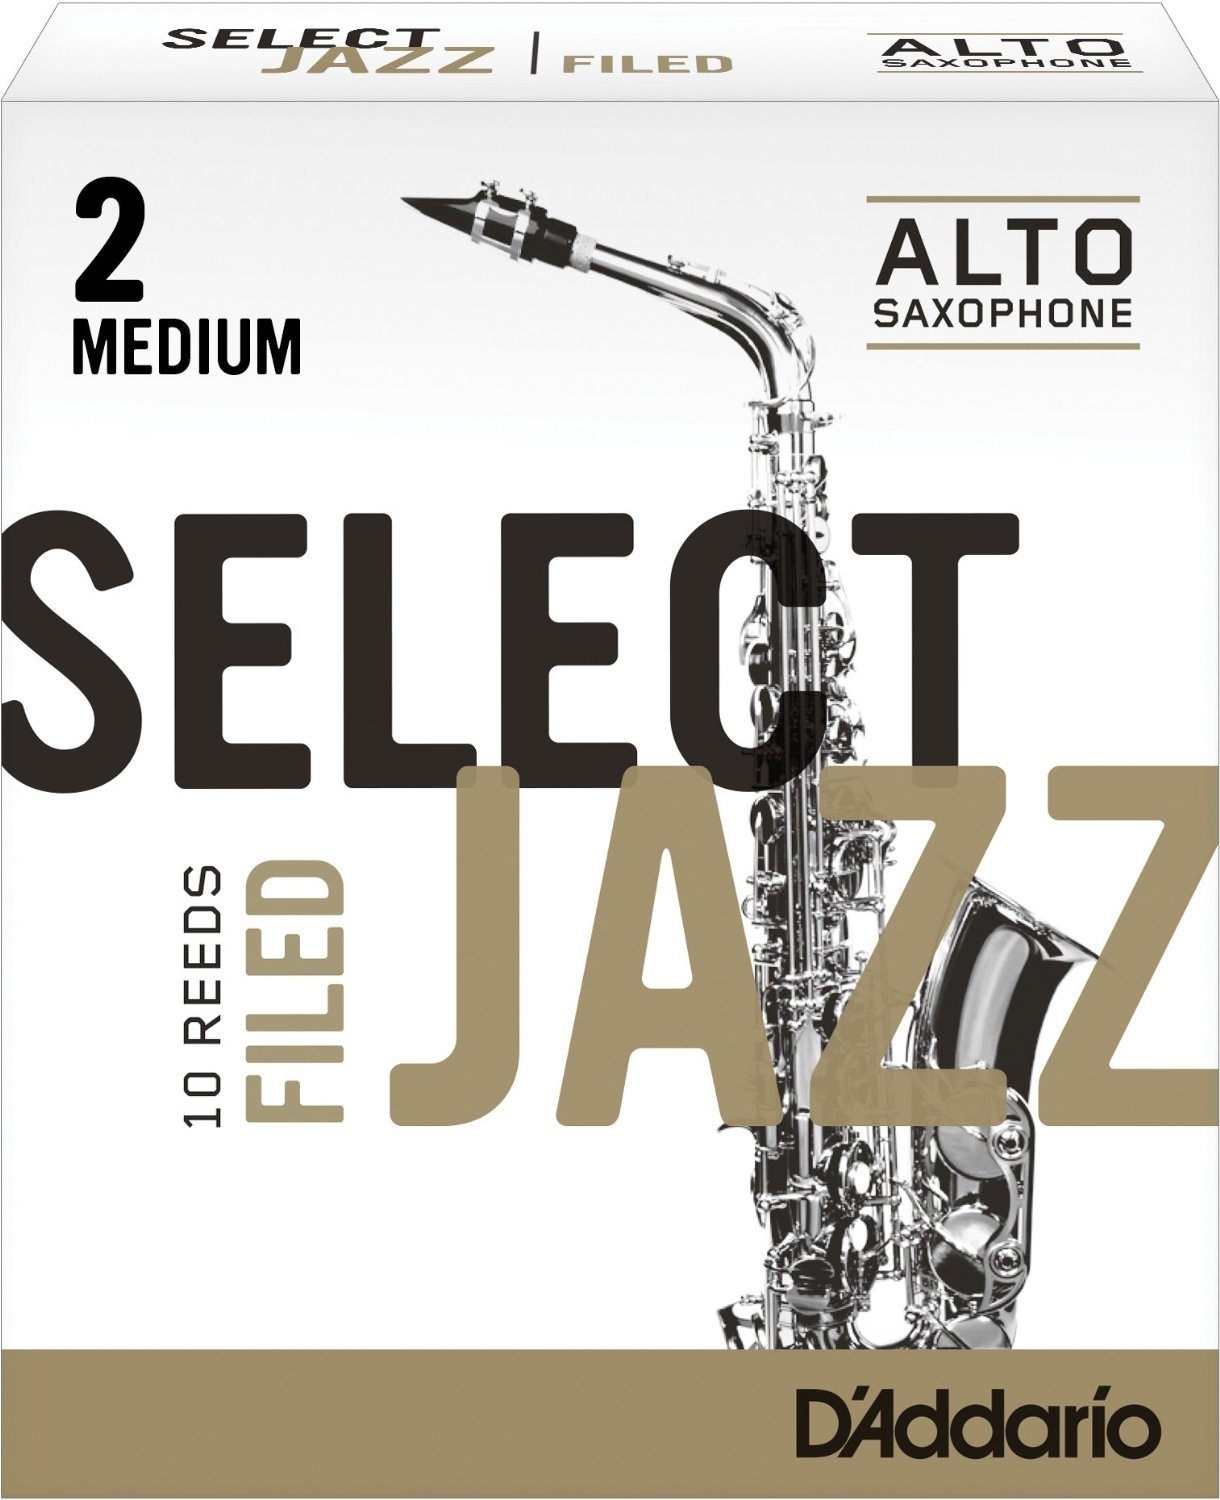 Daddario Jazz Select Filed Eb Alto Sax Reeds, 10CT, 2 M Strength by Rico